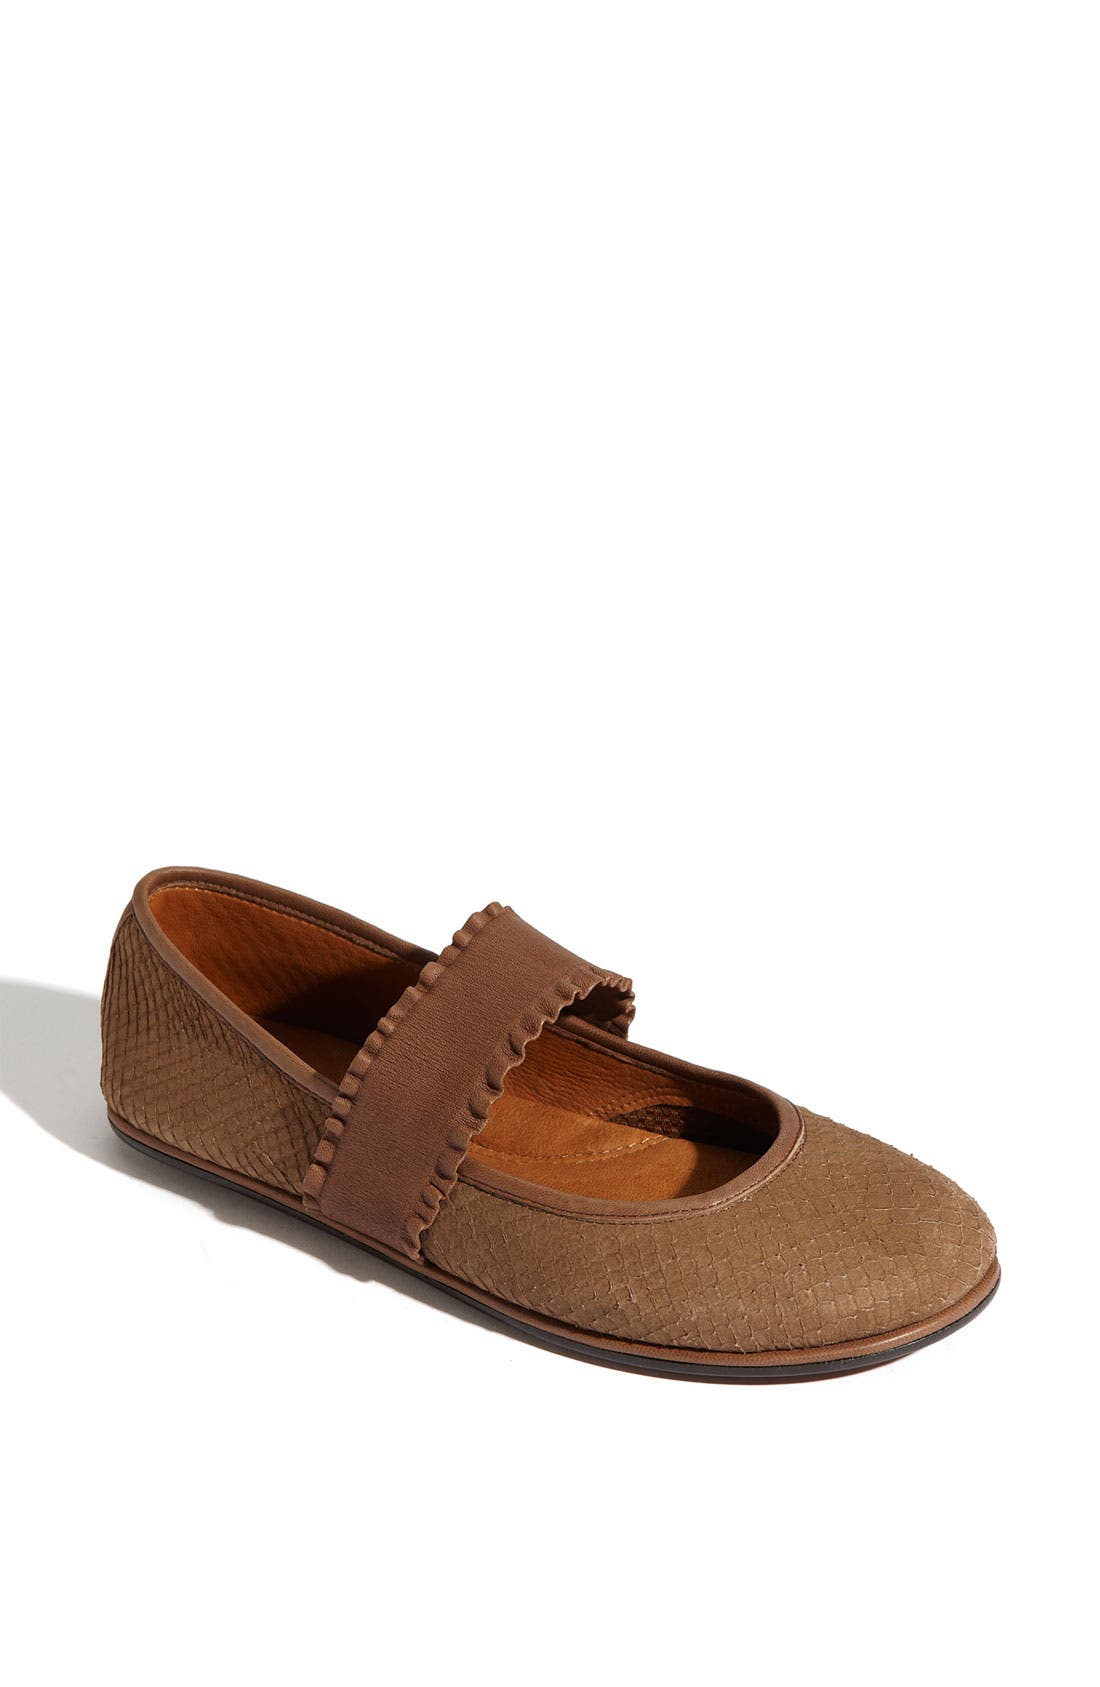 by Kenneth Cole 'Gabby' Flat,                             Main thumbnail 5, color,